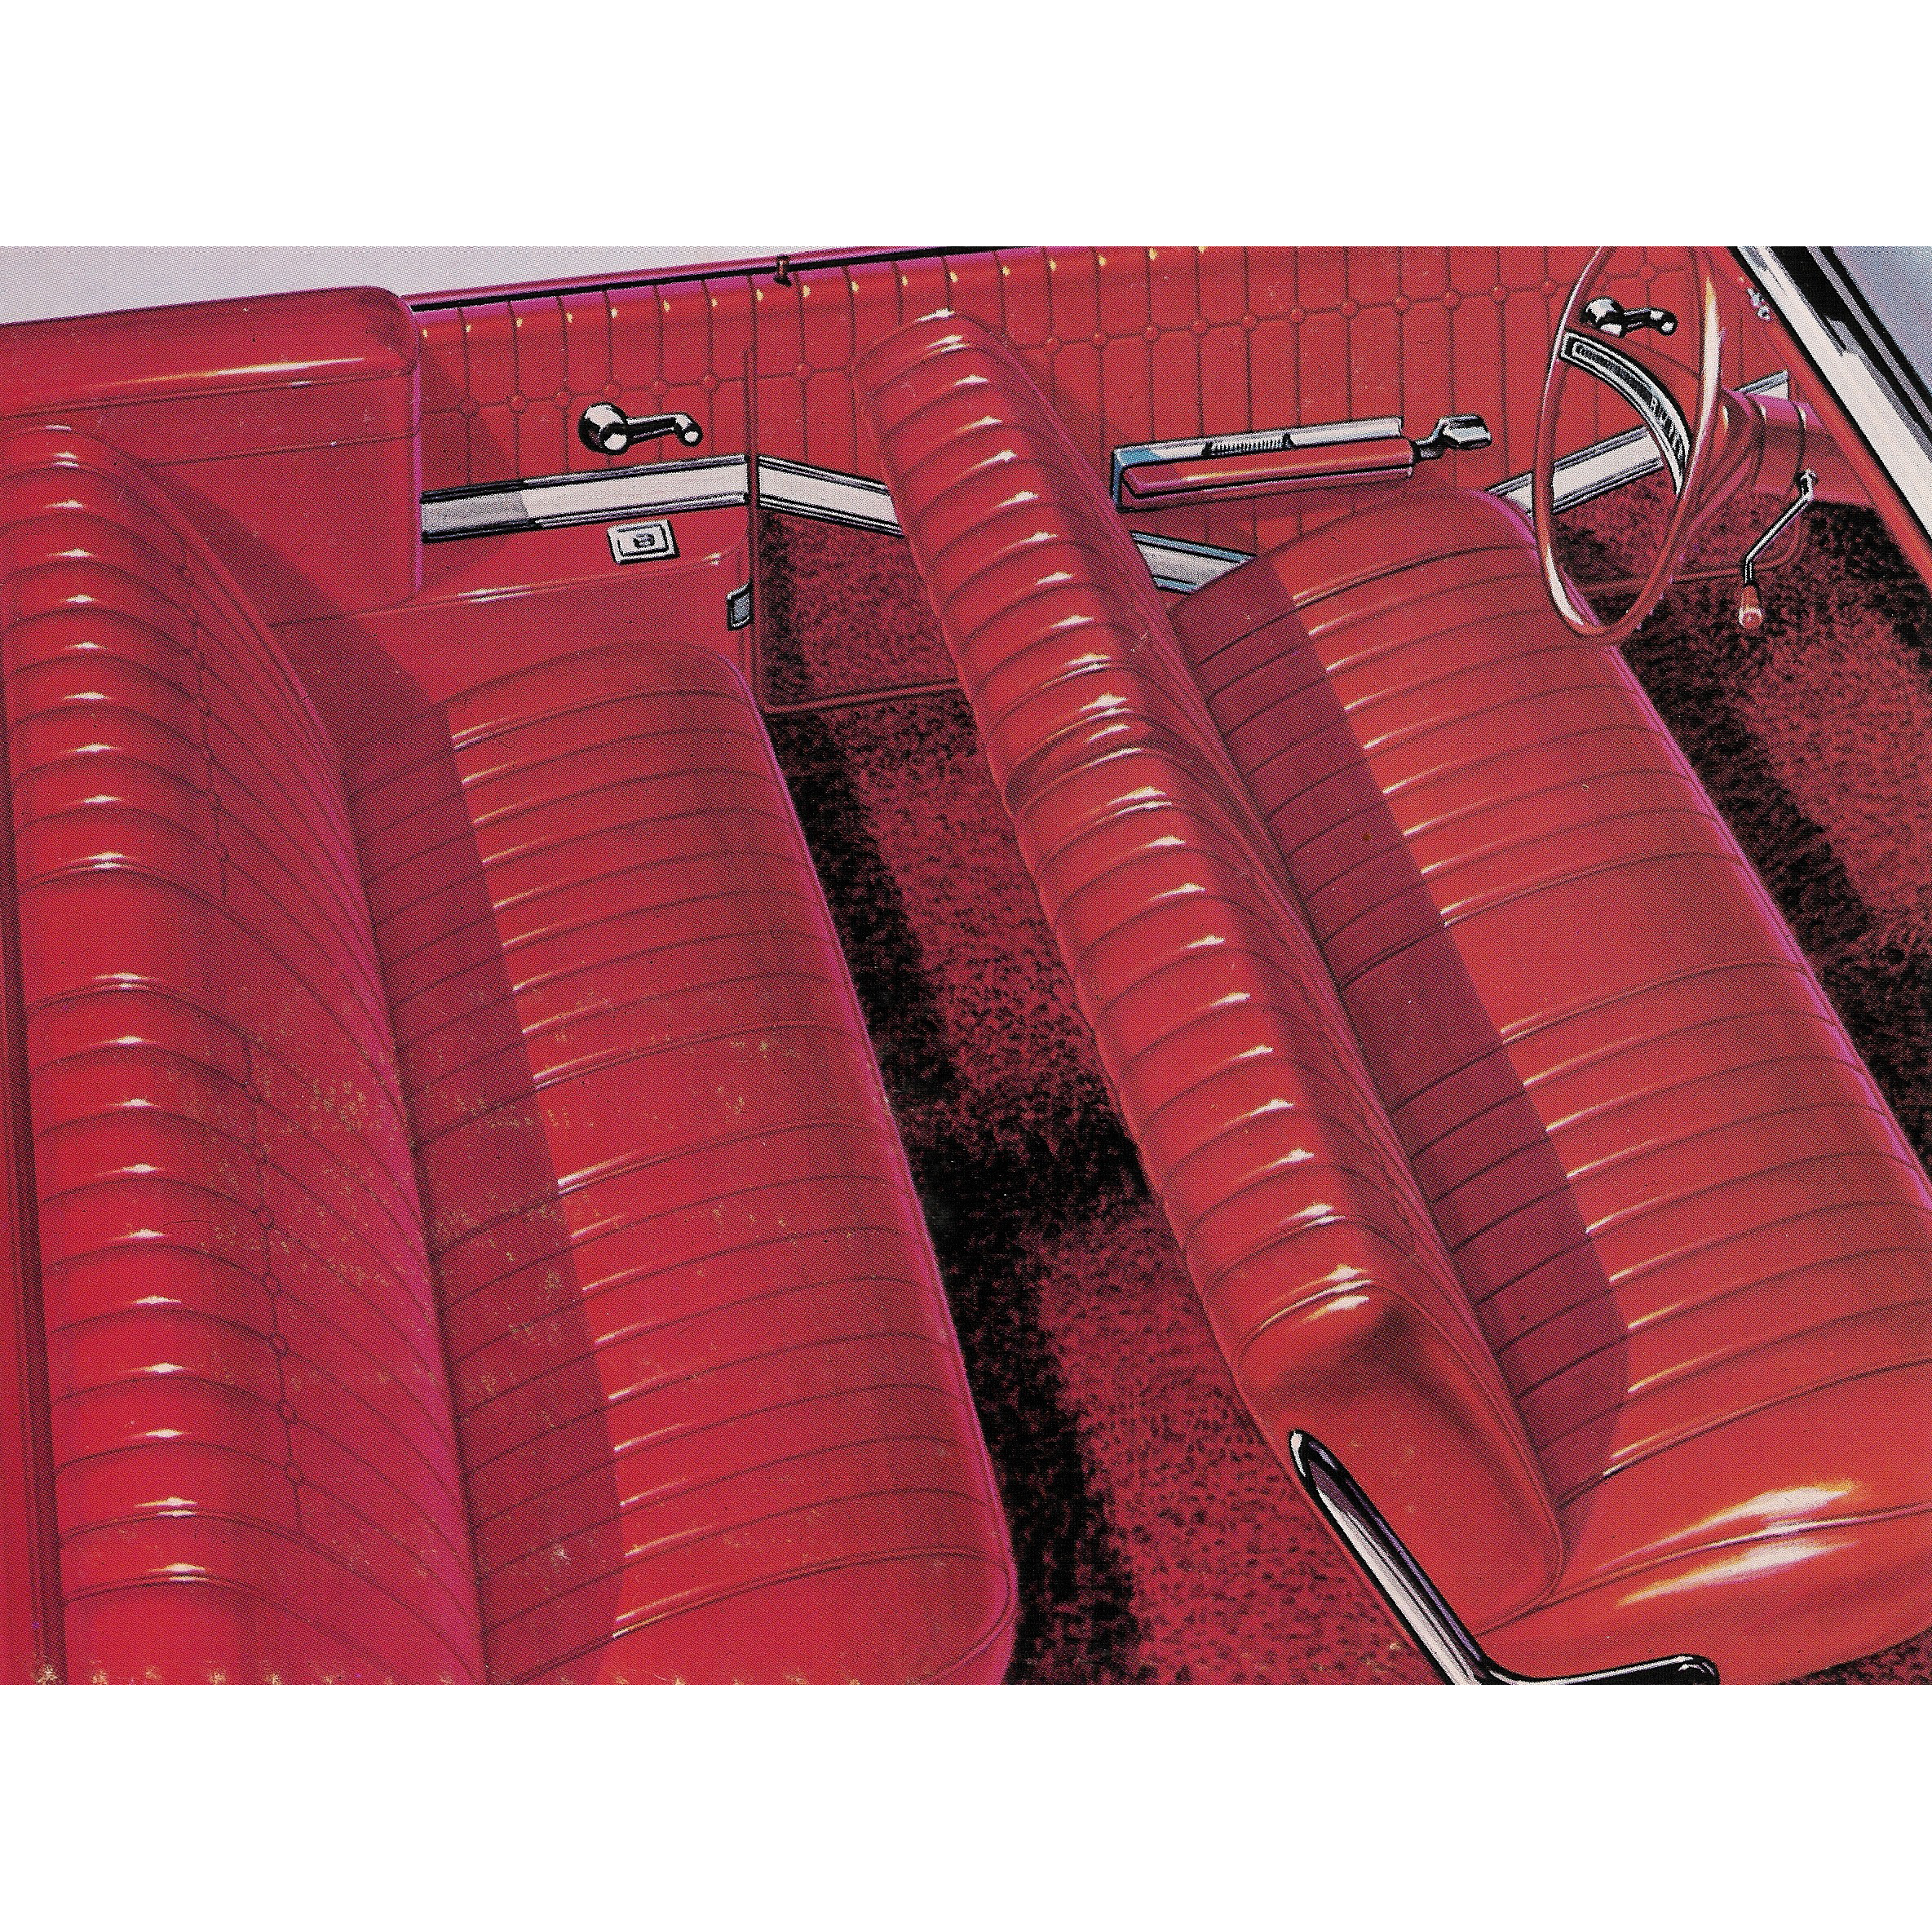 Groovy 64 Skylark Conv Front Split Bench Seat Upholstery Red Machost Co Dining Chair Design Ideas Machostcouk